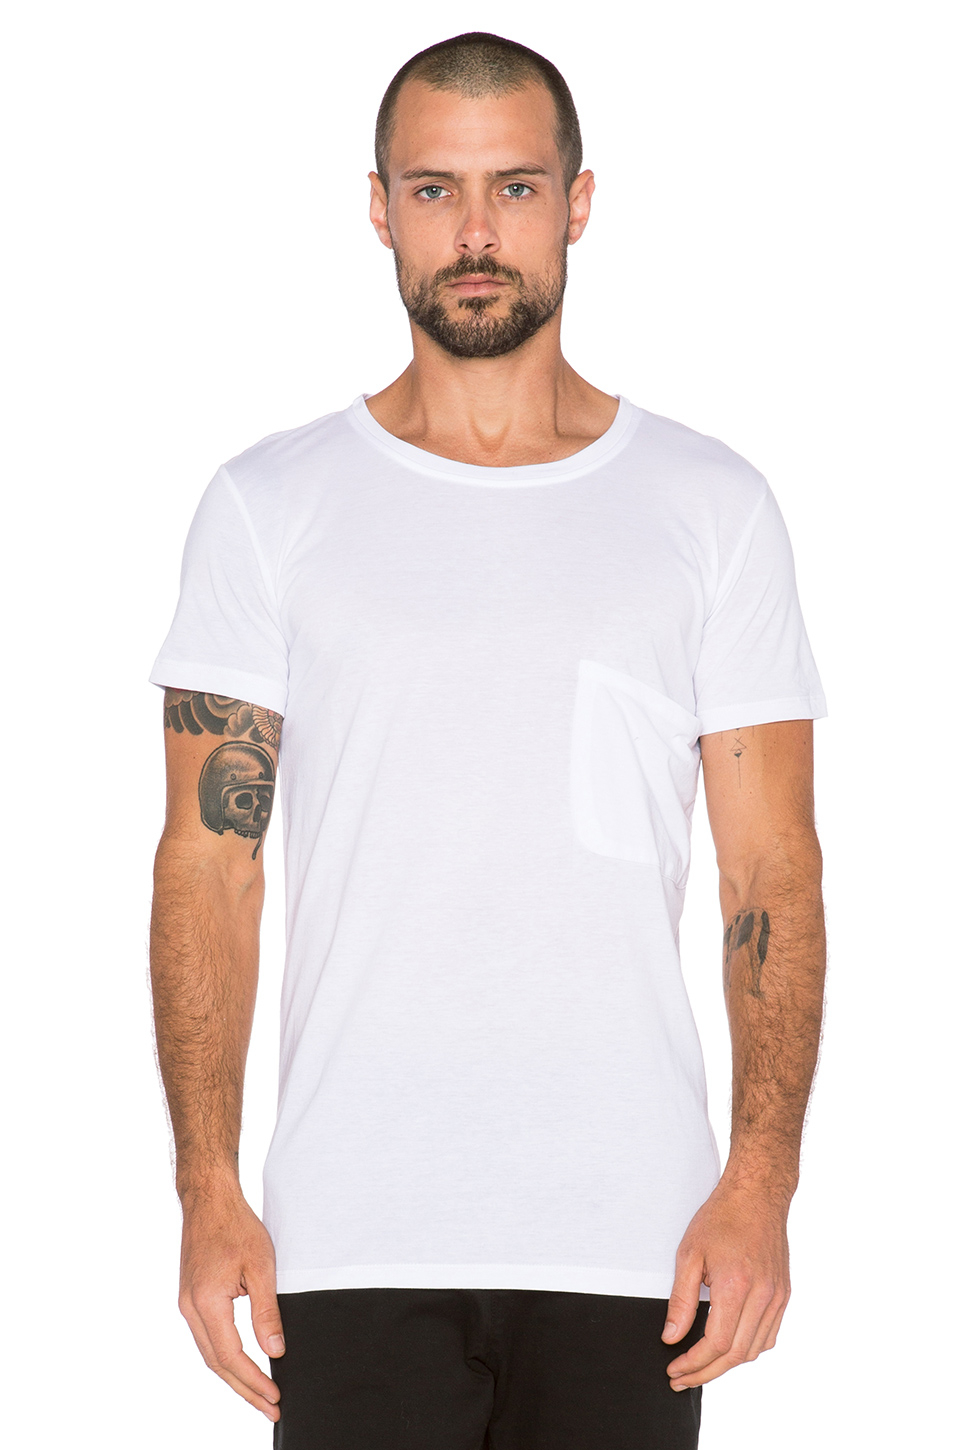 Lot78 Crew Tee in White for Men